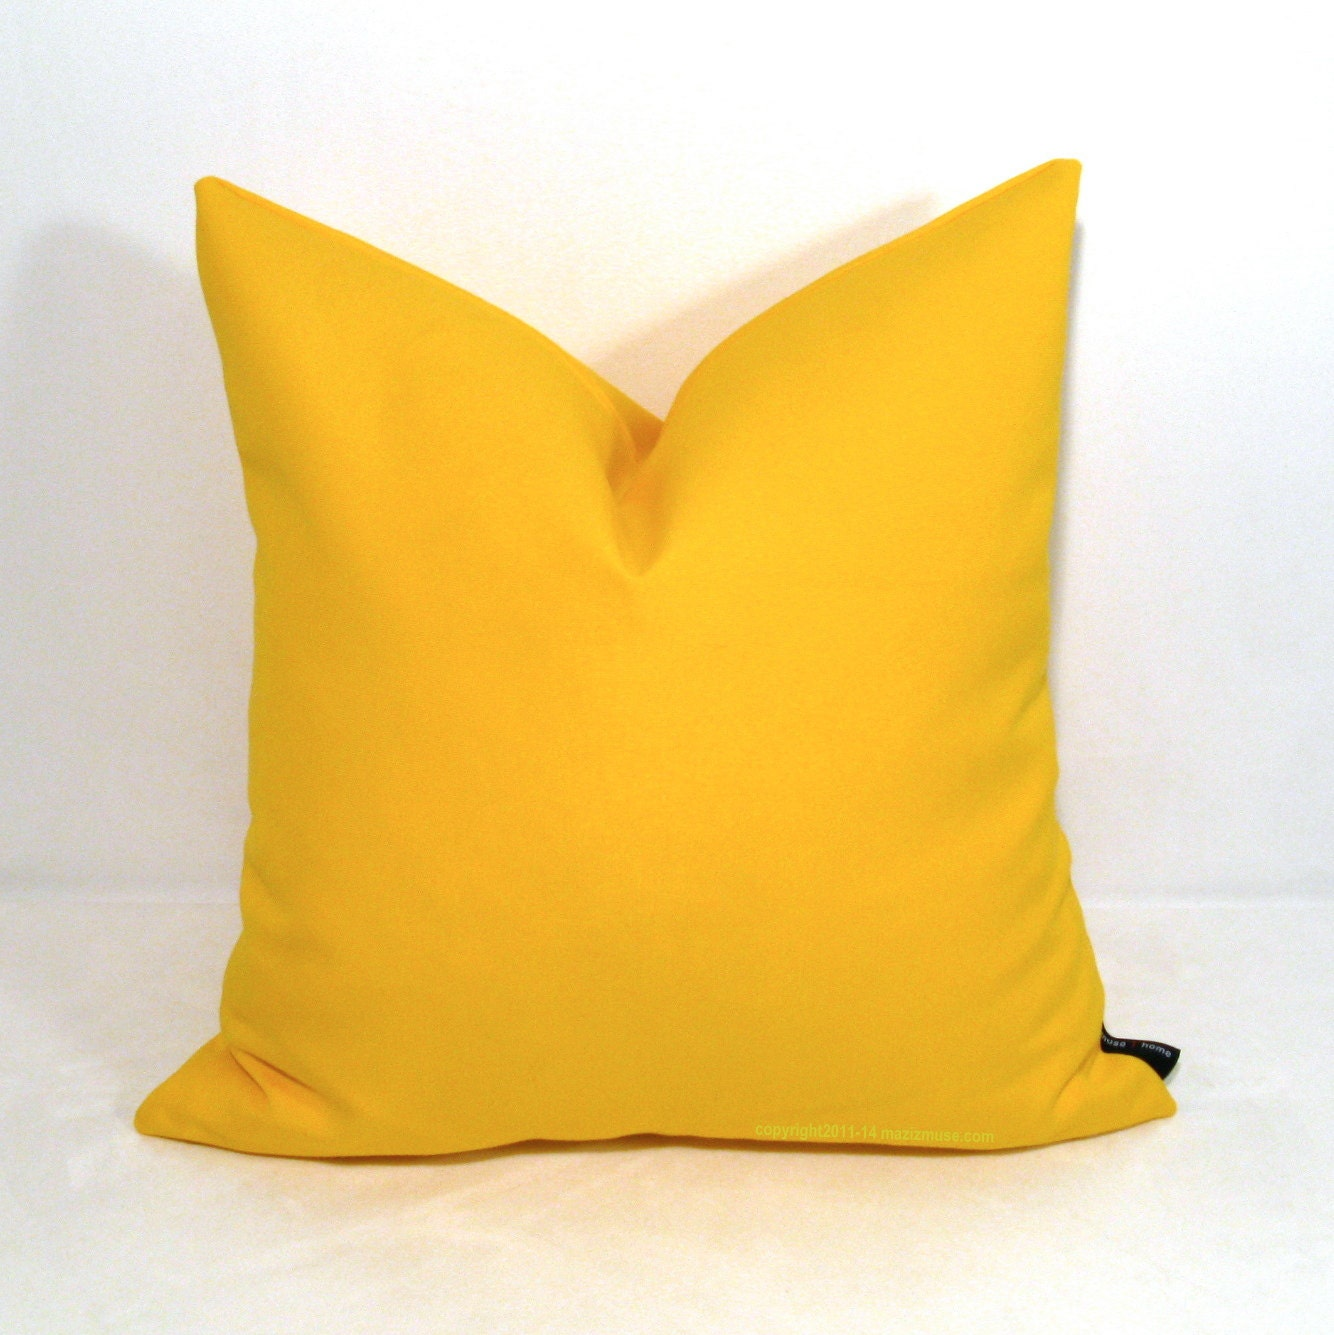 Decorative Outdoor Pillow Covers : Yellow Pillow Cover Decorative Indoor Outdoor by Mazizmuse